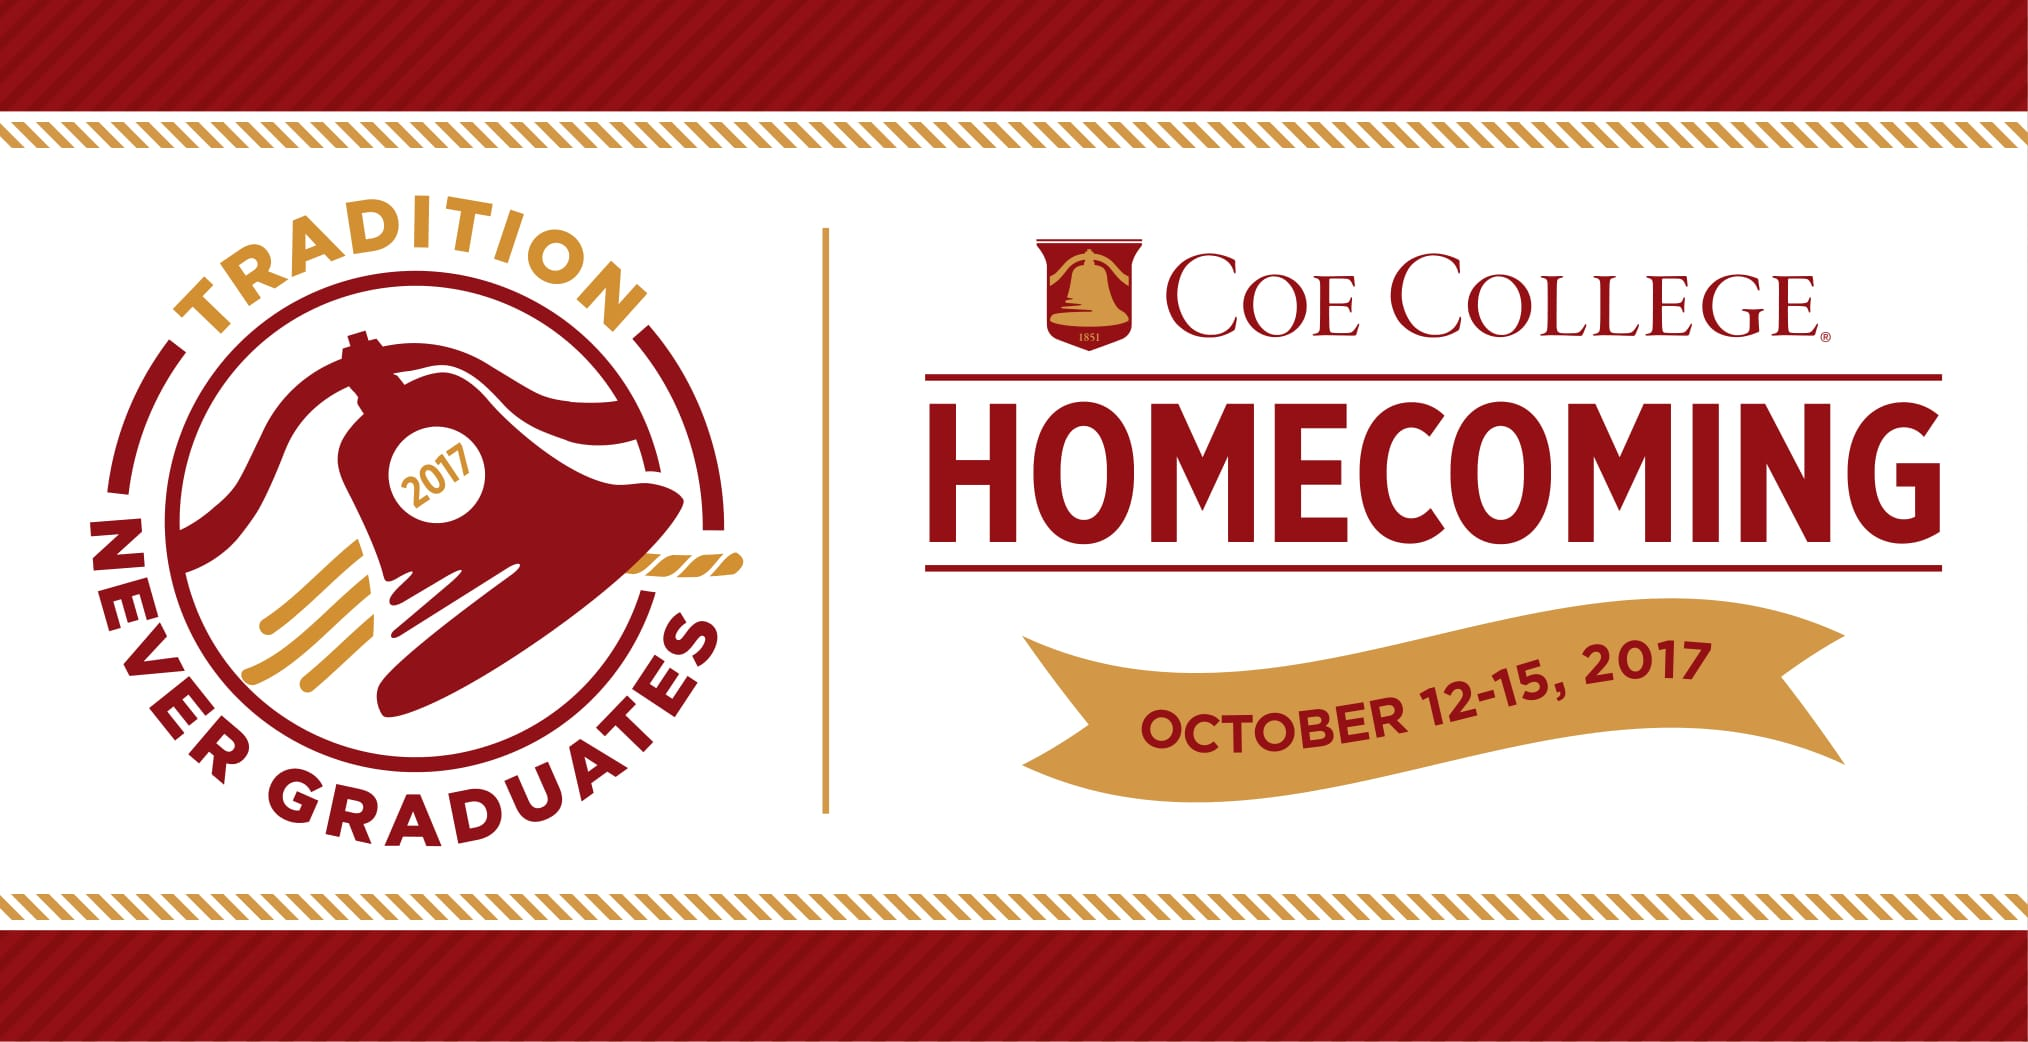 Register now for Homecoming 2017!